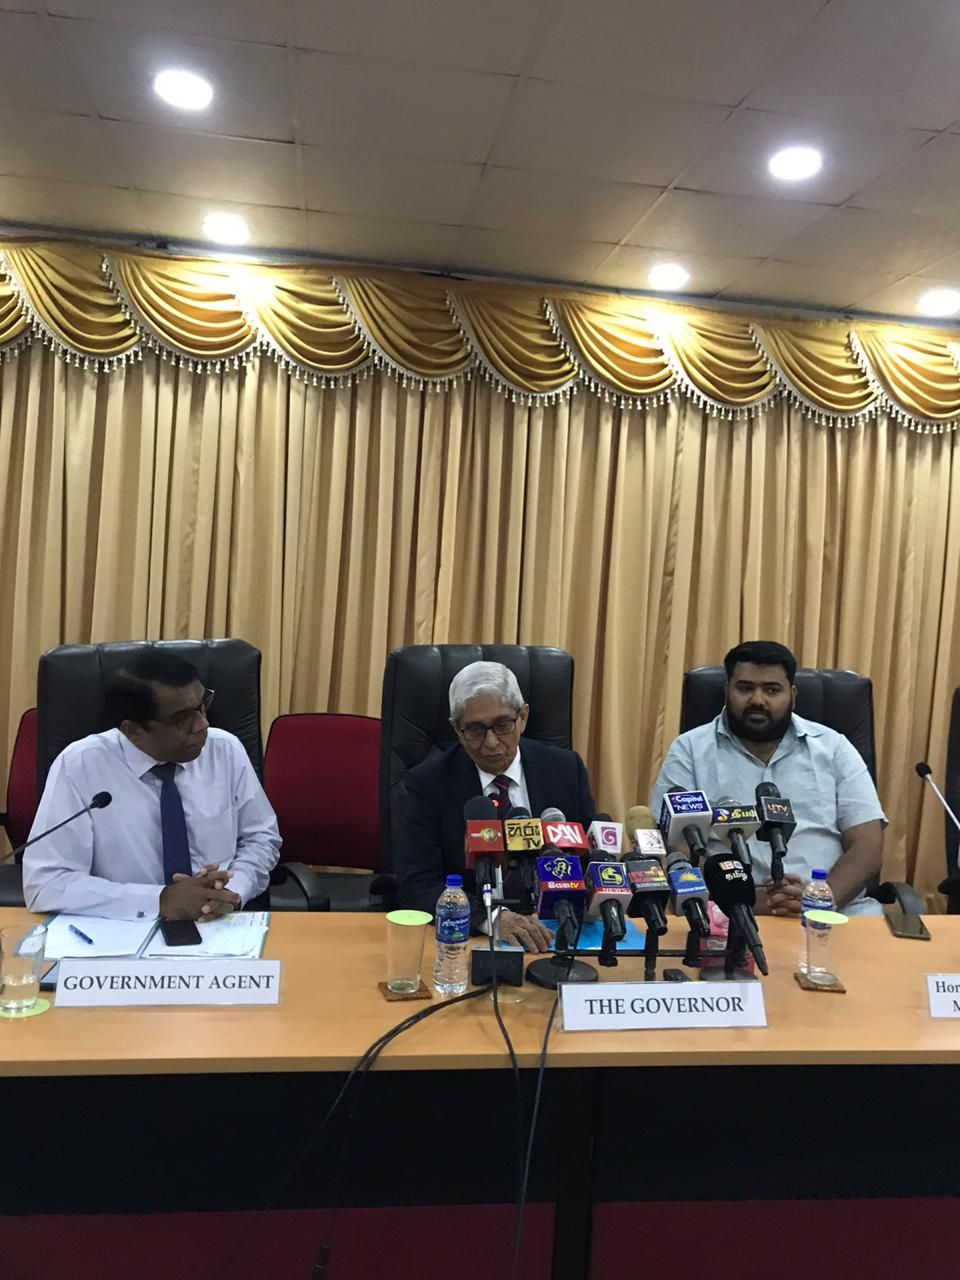 Micro Loans which disintegrate Social Structure – Ready to act by drafting policies, says Central Bank Governor, in Jaffna